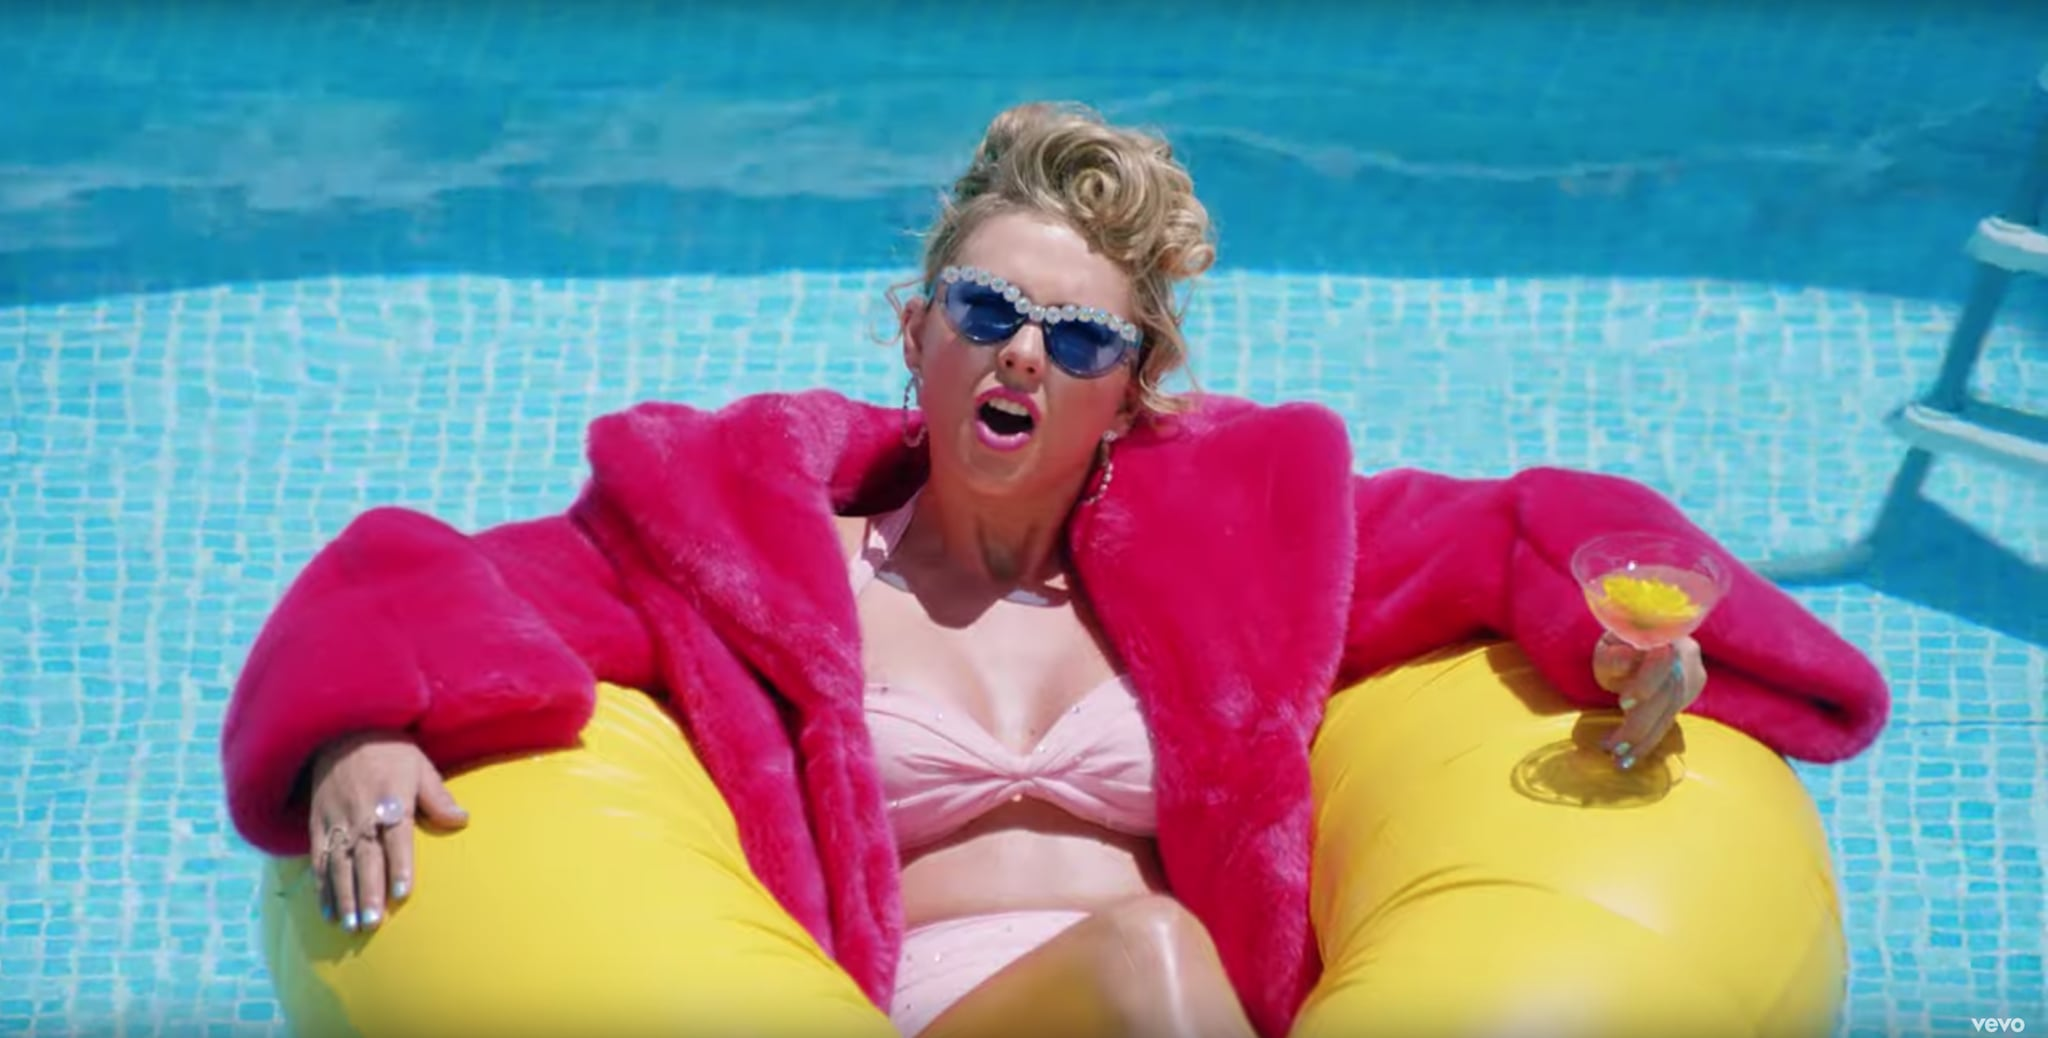 Taylor Swift Sunglasses In You Need To Calm Down Video Popsugar Fashion